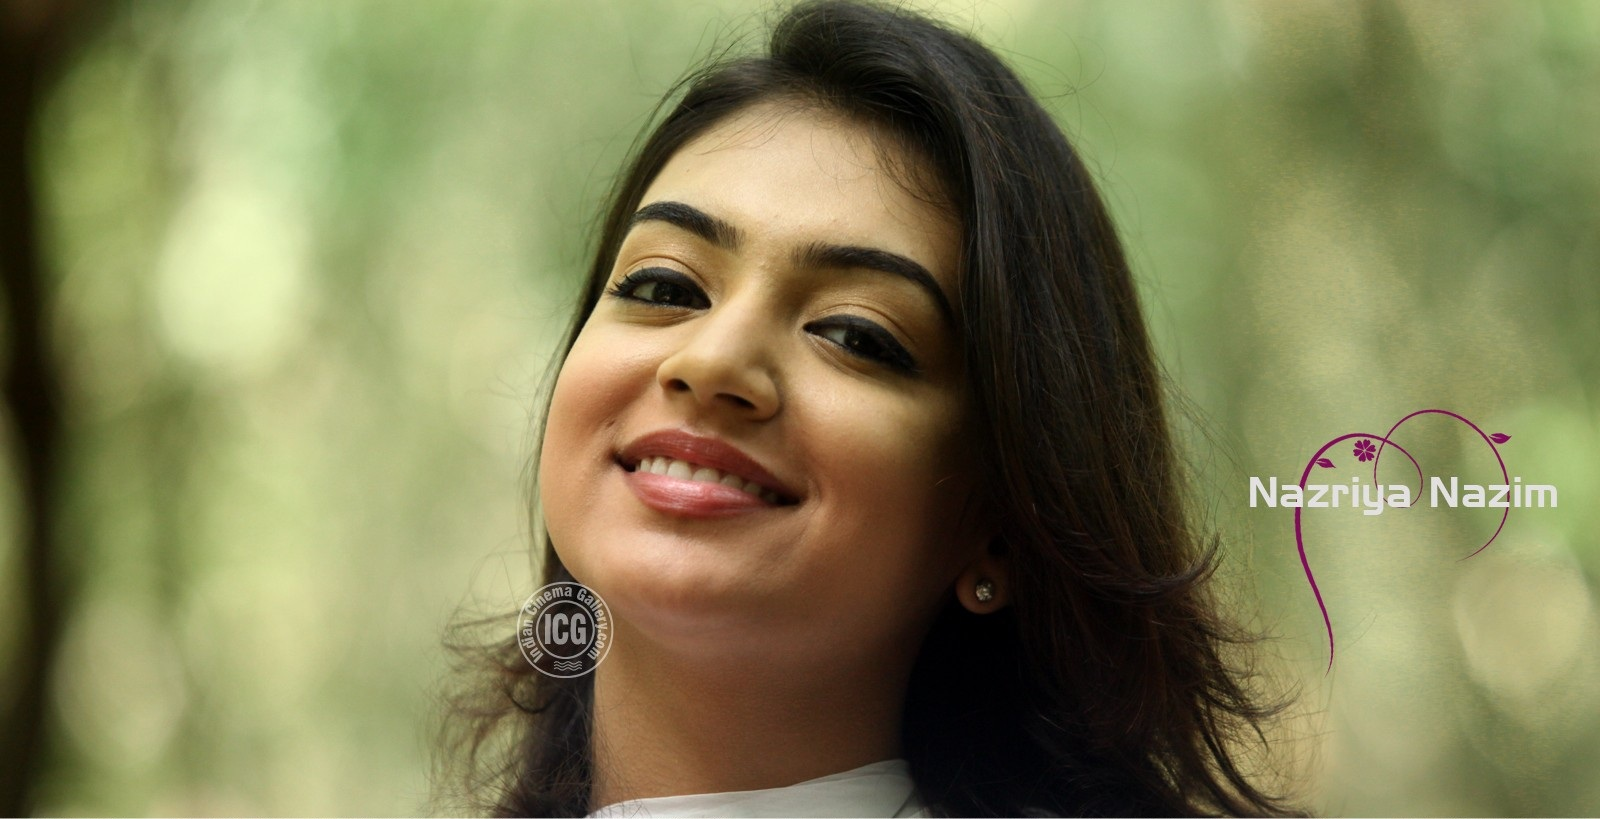 nazriya nazim hd wallpapers free download | yahoo-tv-blog